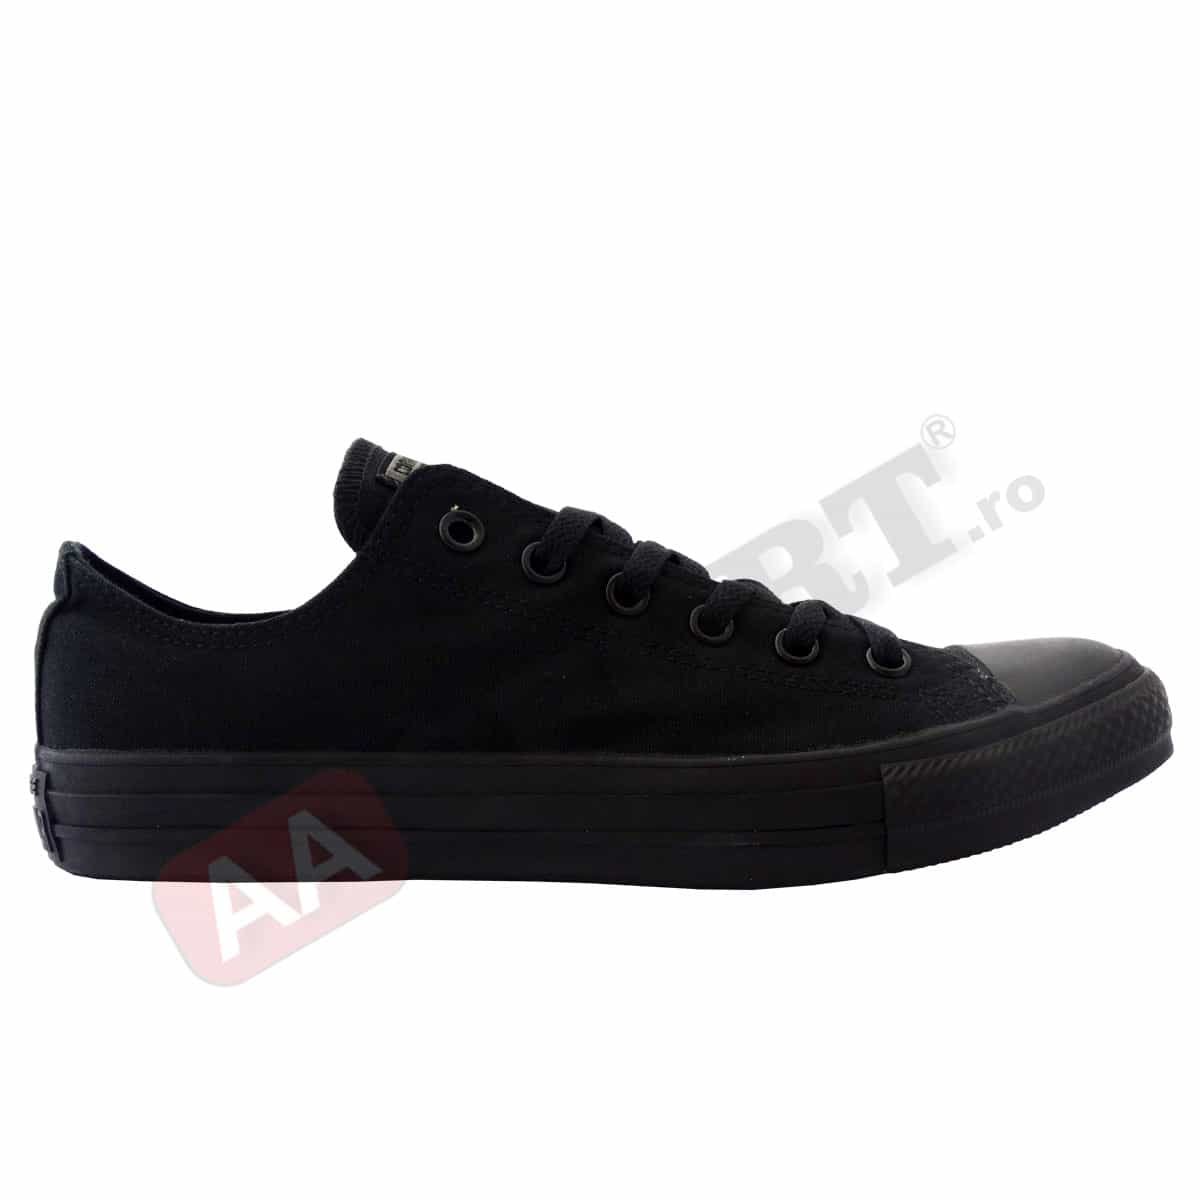 TENISI CONVERSE C TAYLOR AS OX - M5039C 1